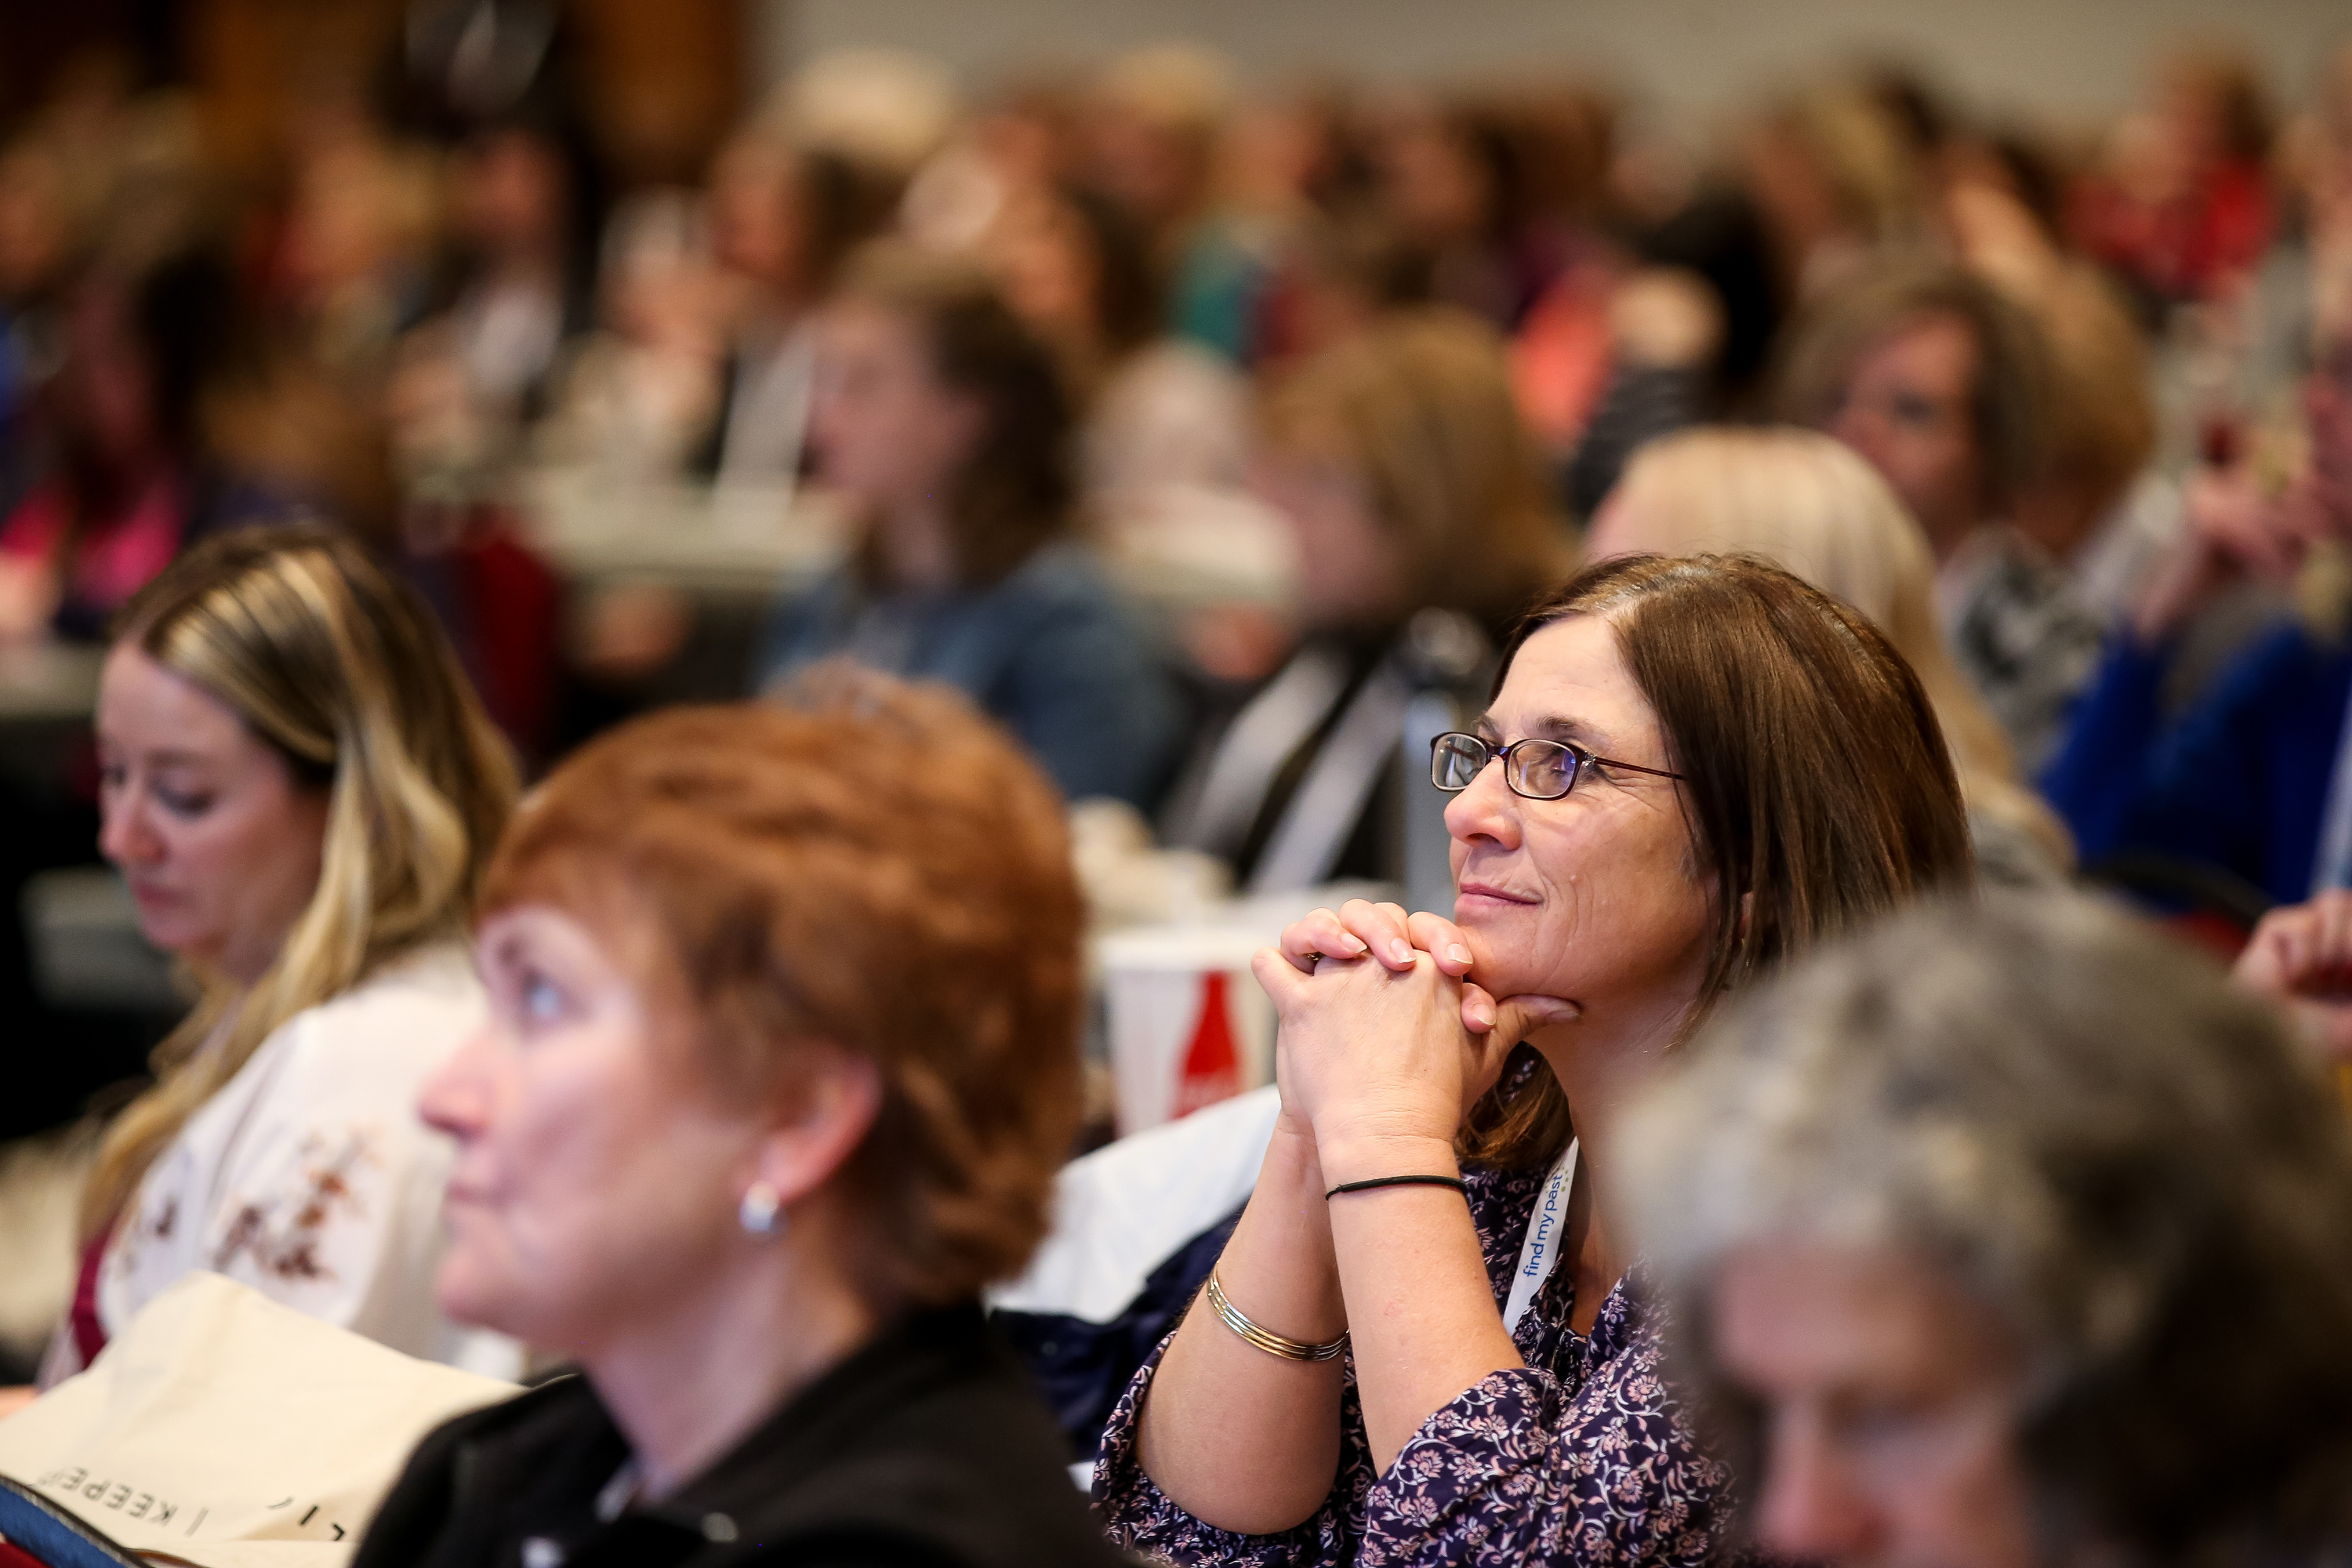 Elizabeth Ann Clark listens during the Light Keepers session at the RootsTech conference at the Salt Palace in Salt Lake City on Friday, March 1, 2019.